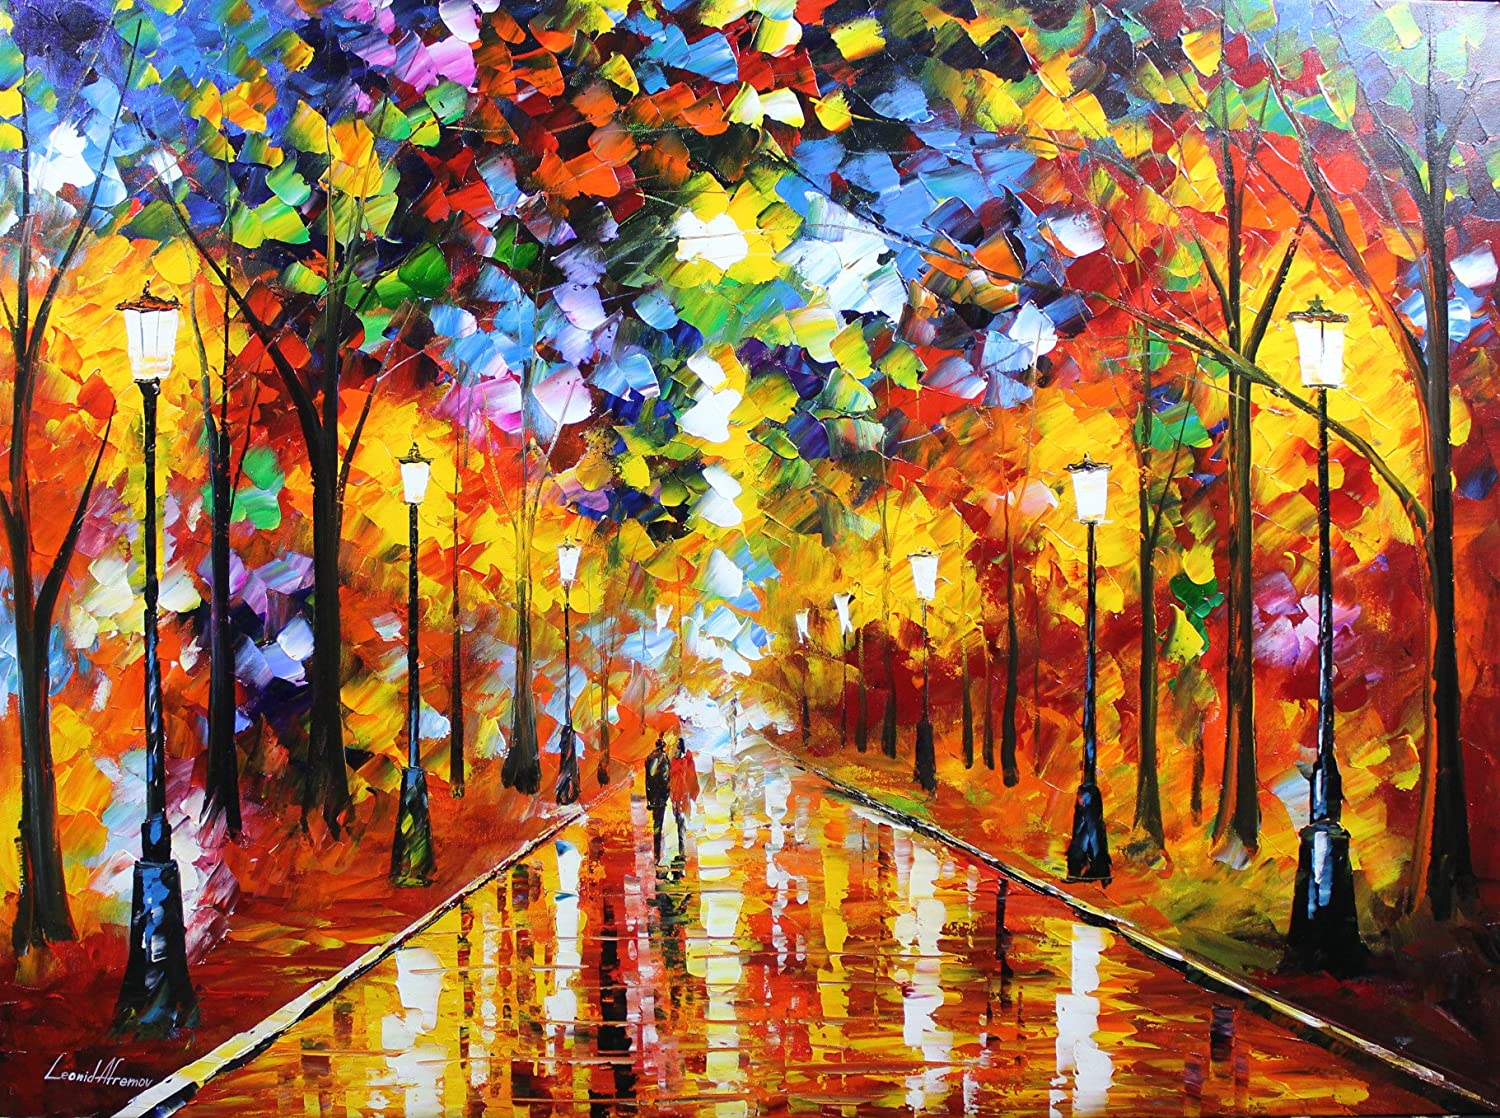 Amazon.com: Farewell to Anger is a ONE-OF-A-KIND, Original Oil Painting on  Canvas: Leonid Afremov: Home & Kitchen